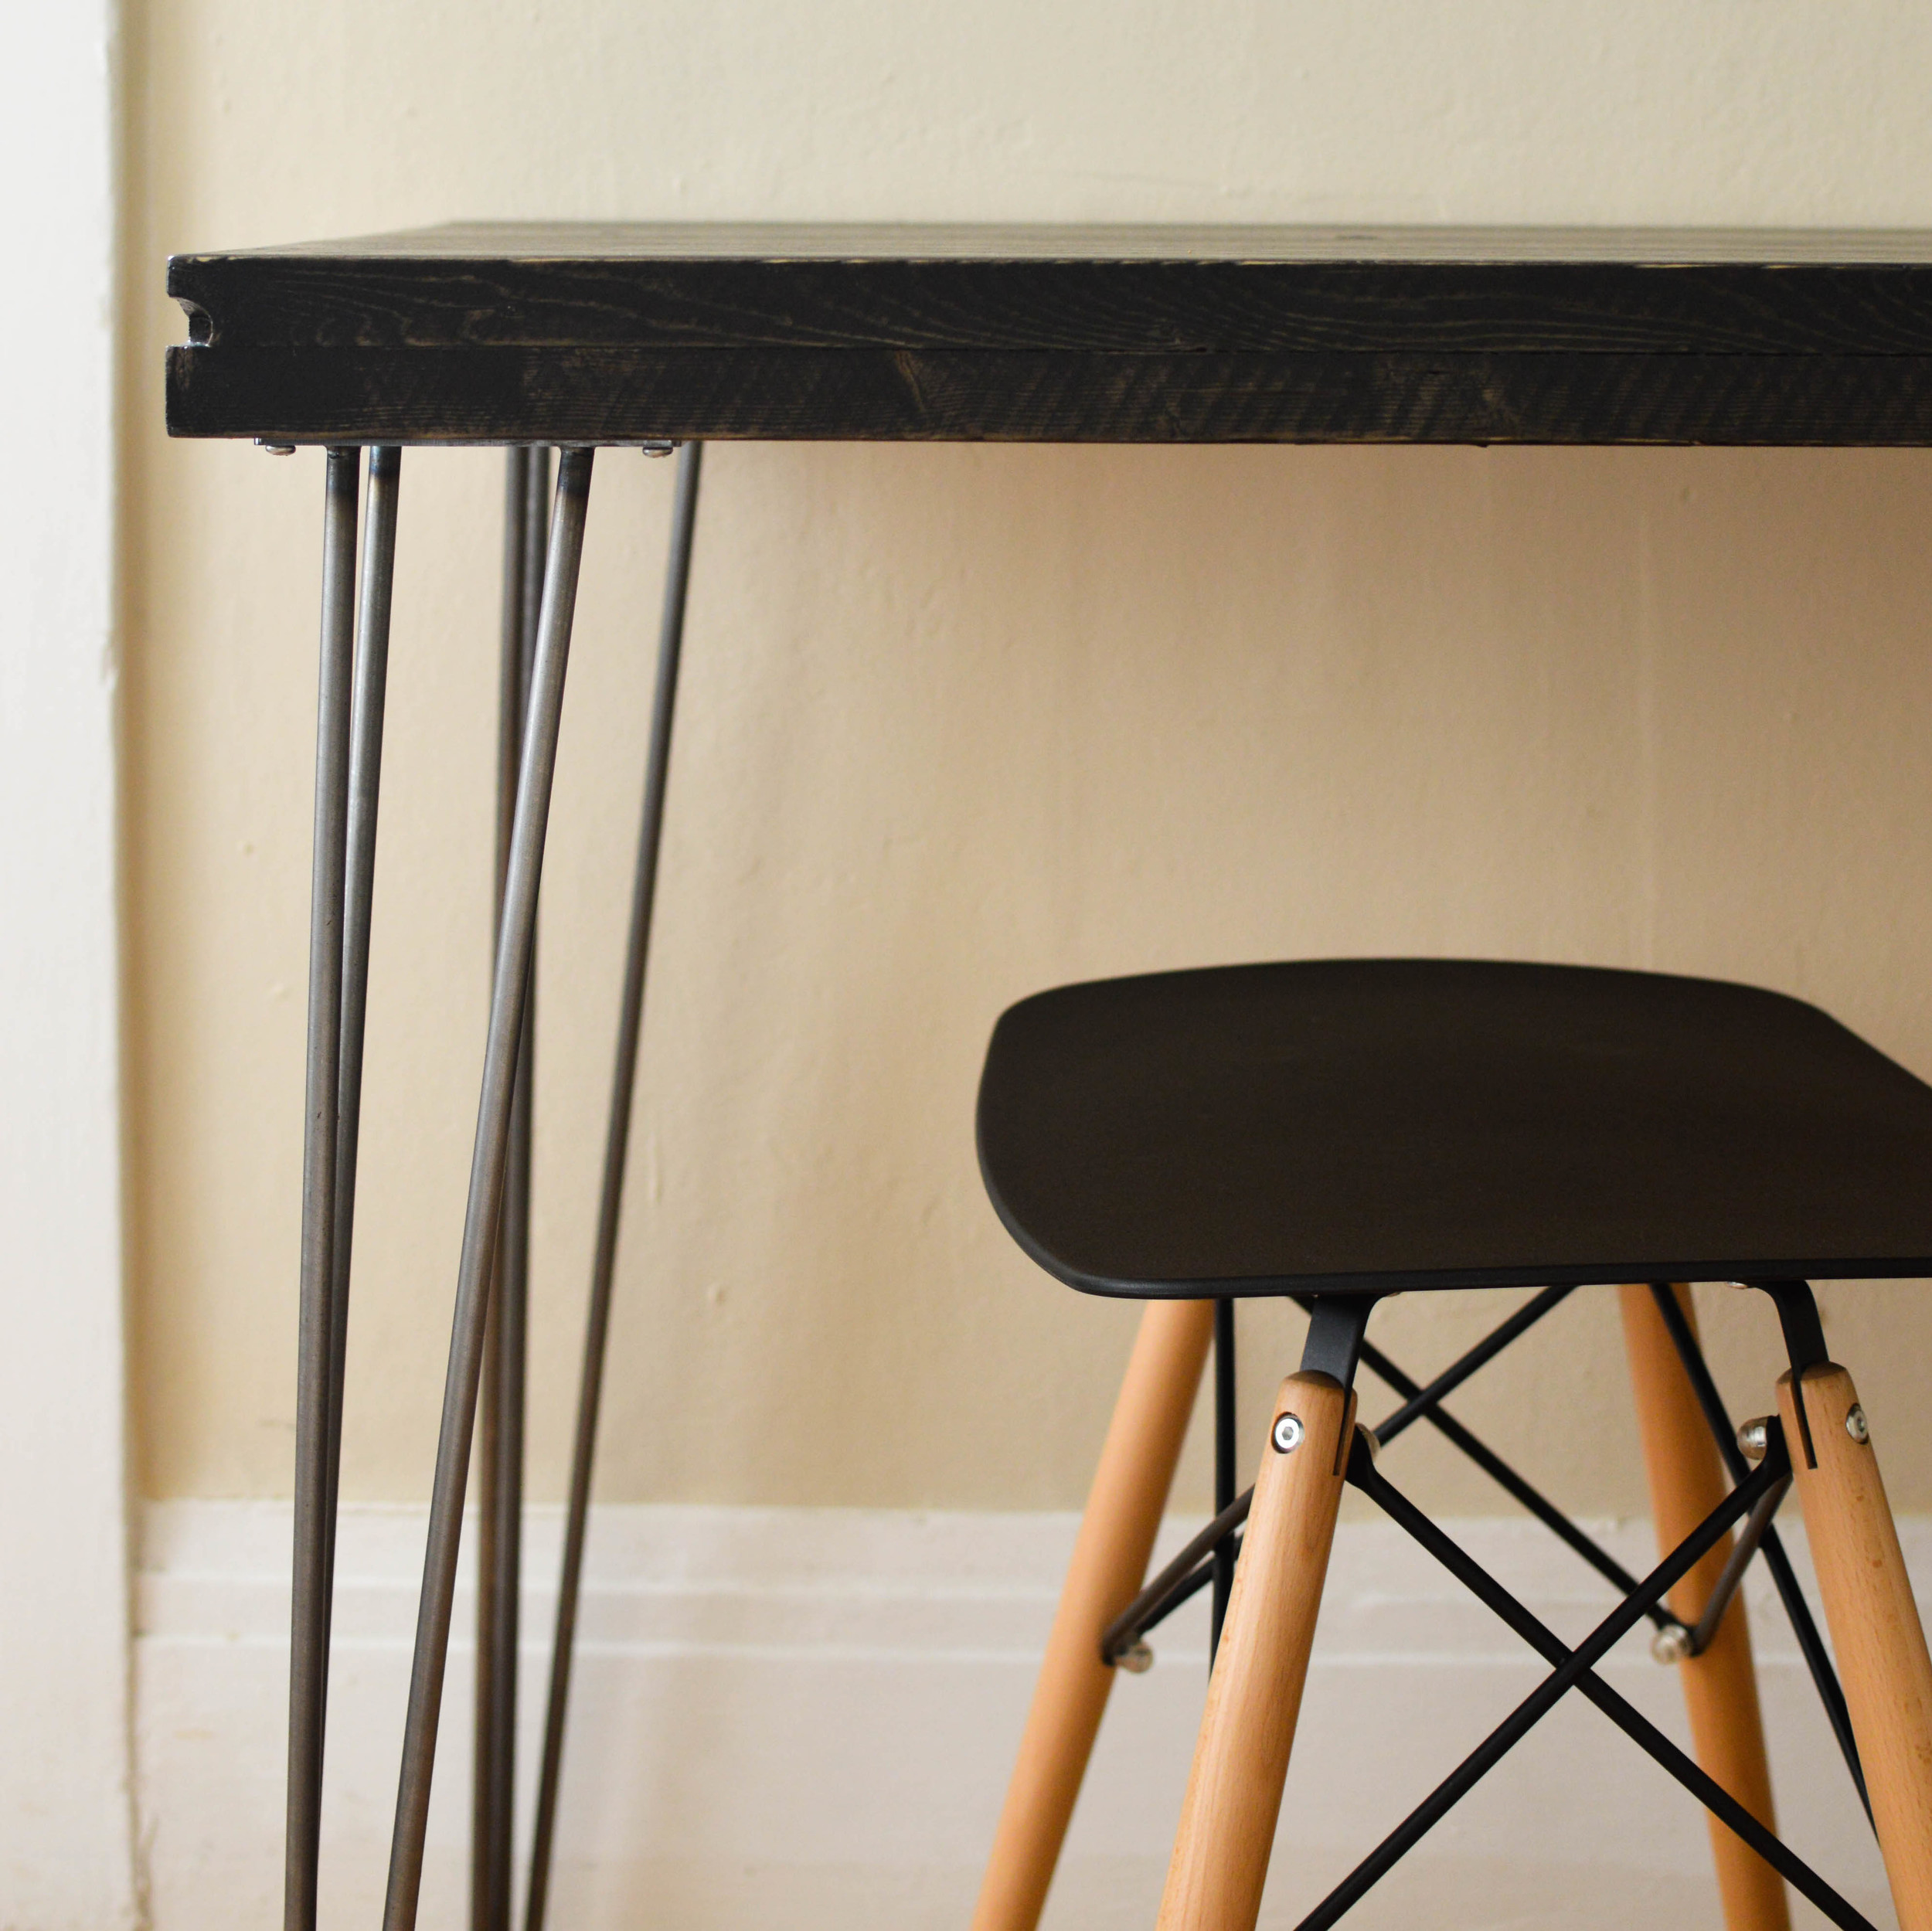 DIY HACK: CLASS UP YOUR TABLE BY SWAPPING FOR HAIRPIN LEGS